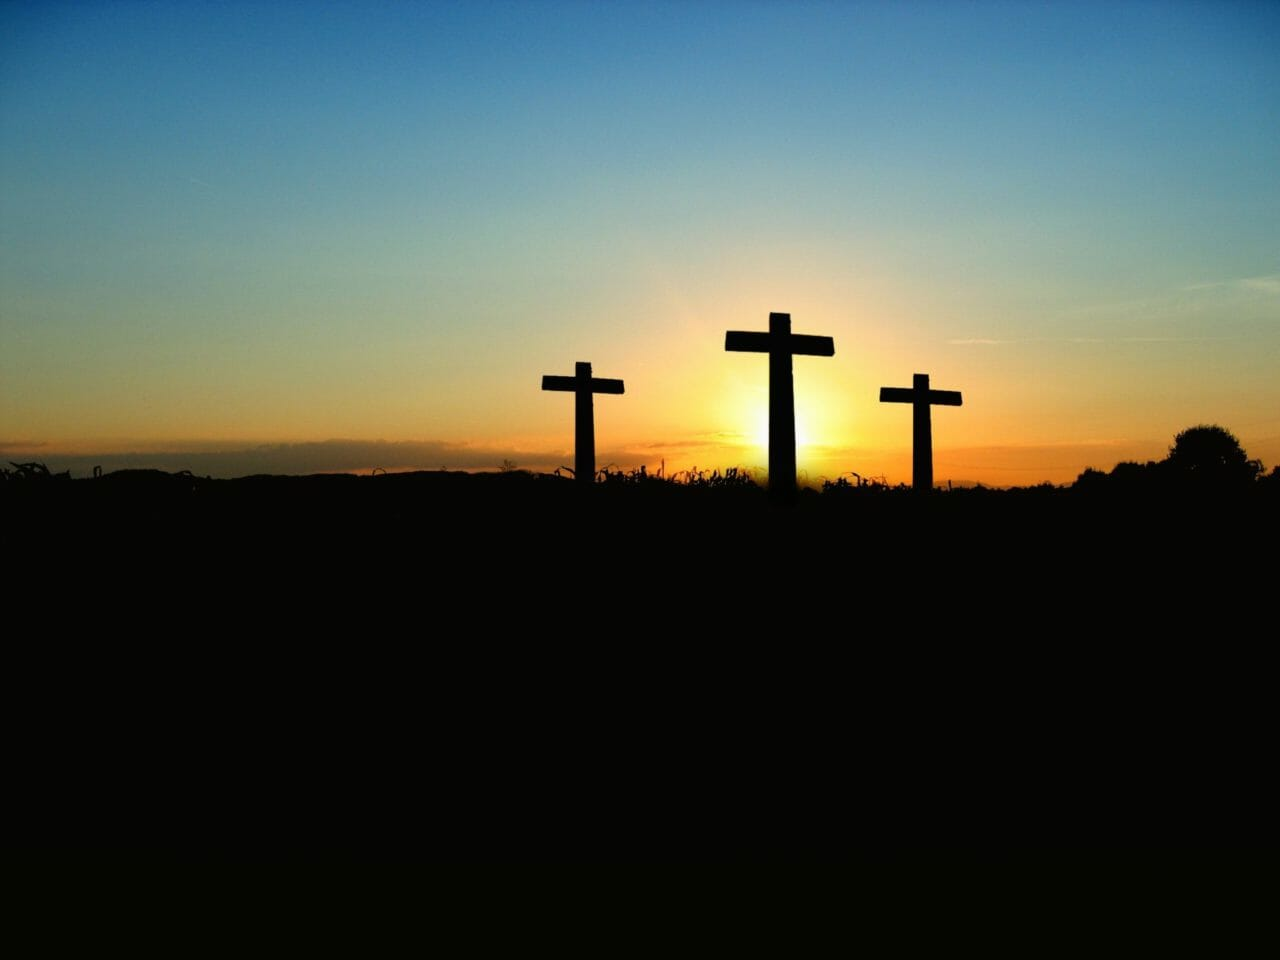 crosses at sunset on mountain